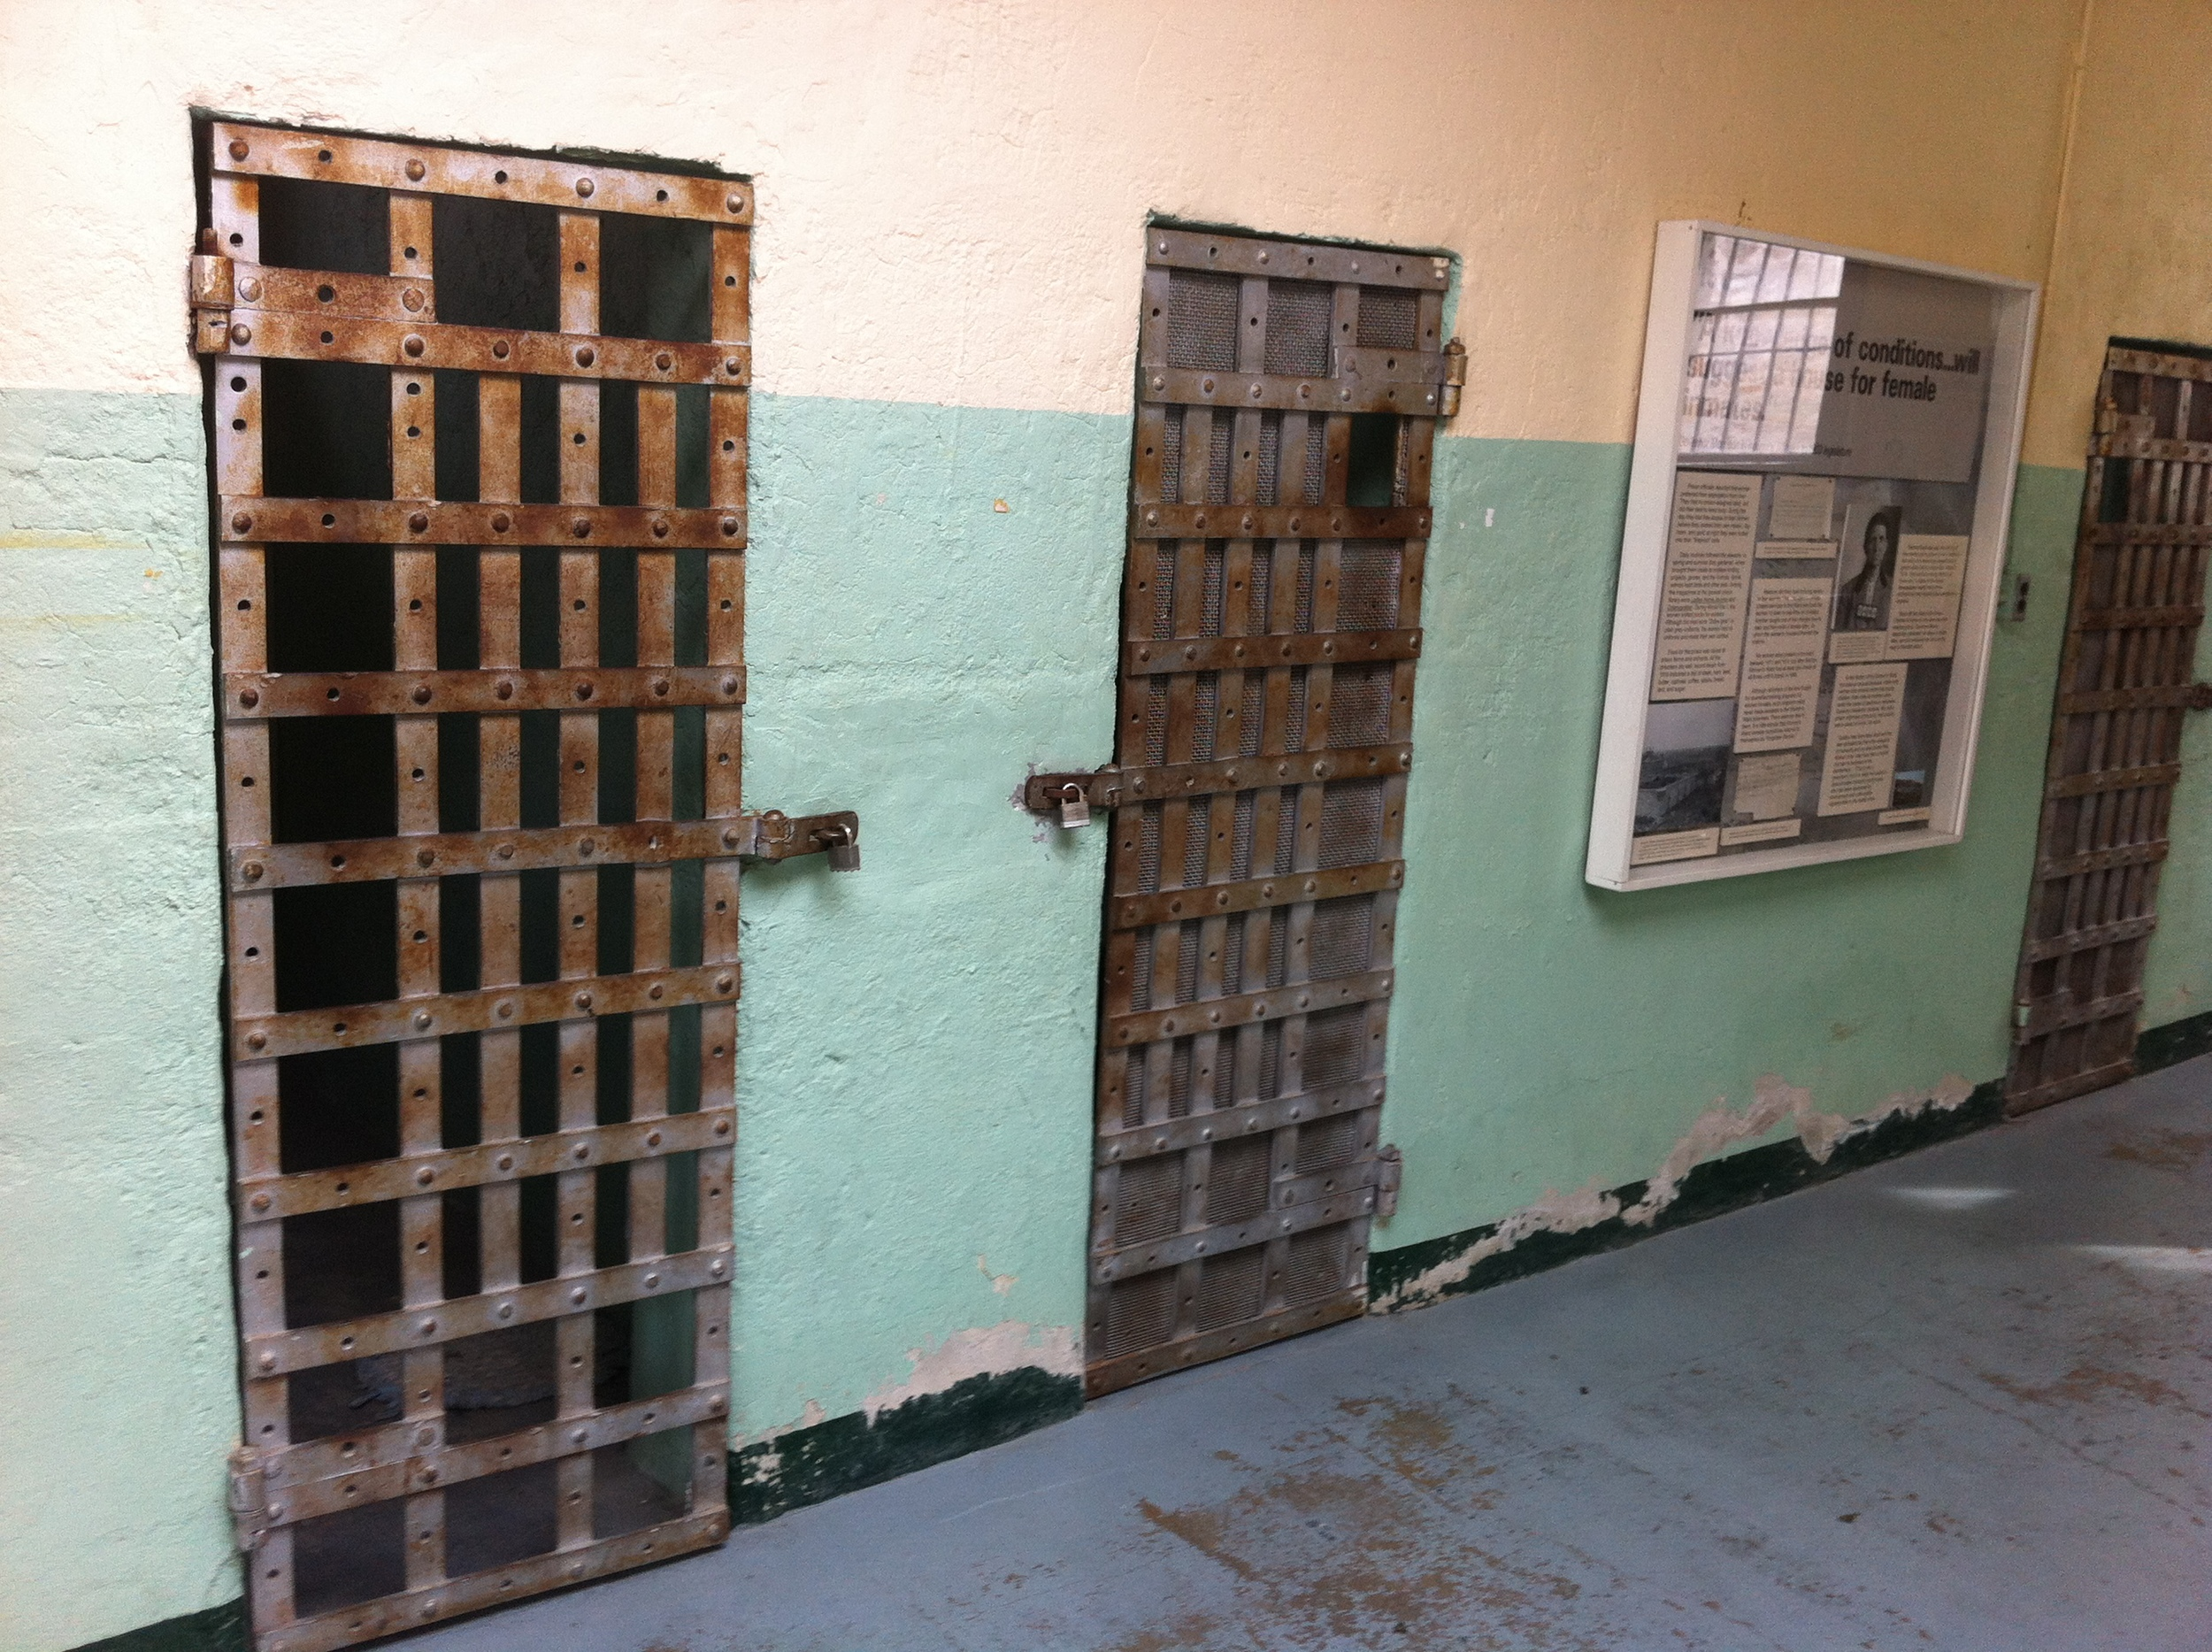 The women cells were in a separate building. While the conditions were minimal there was some colour and lots of light.